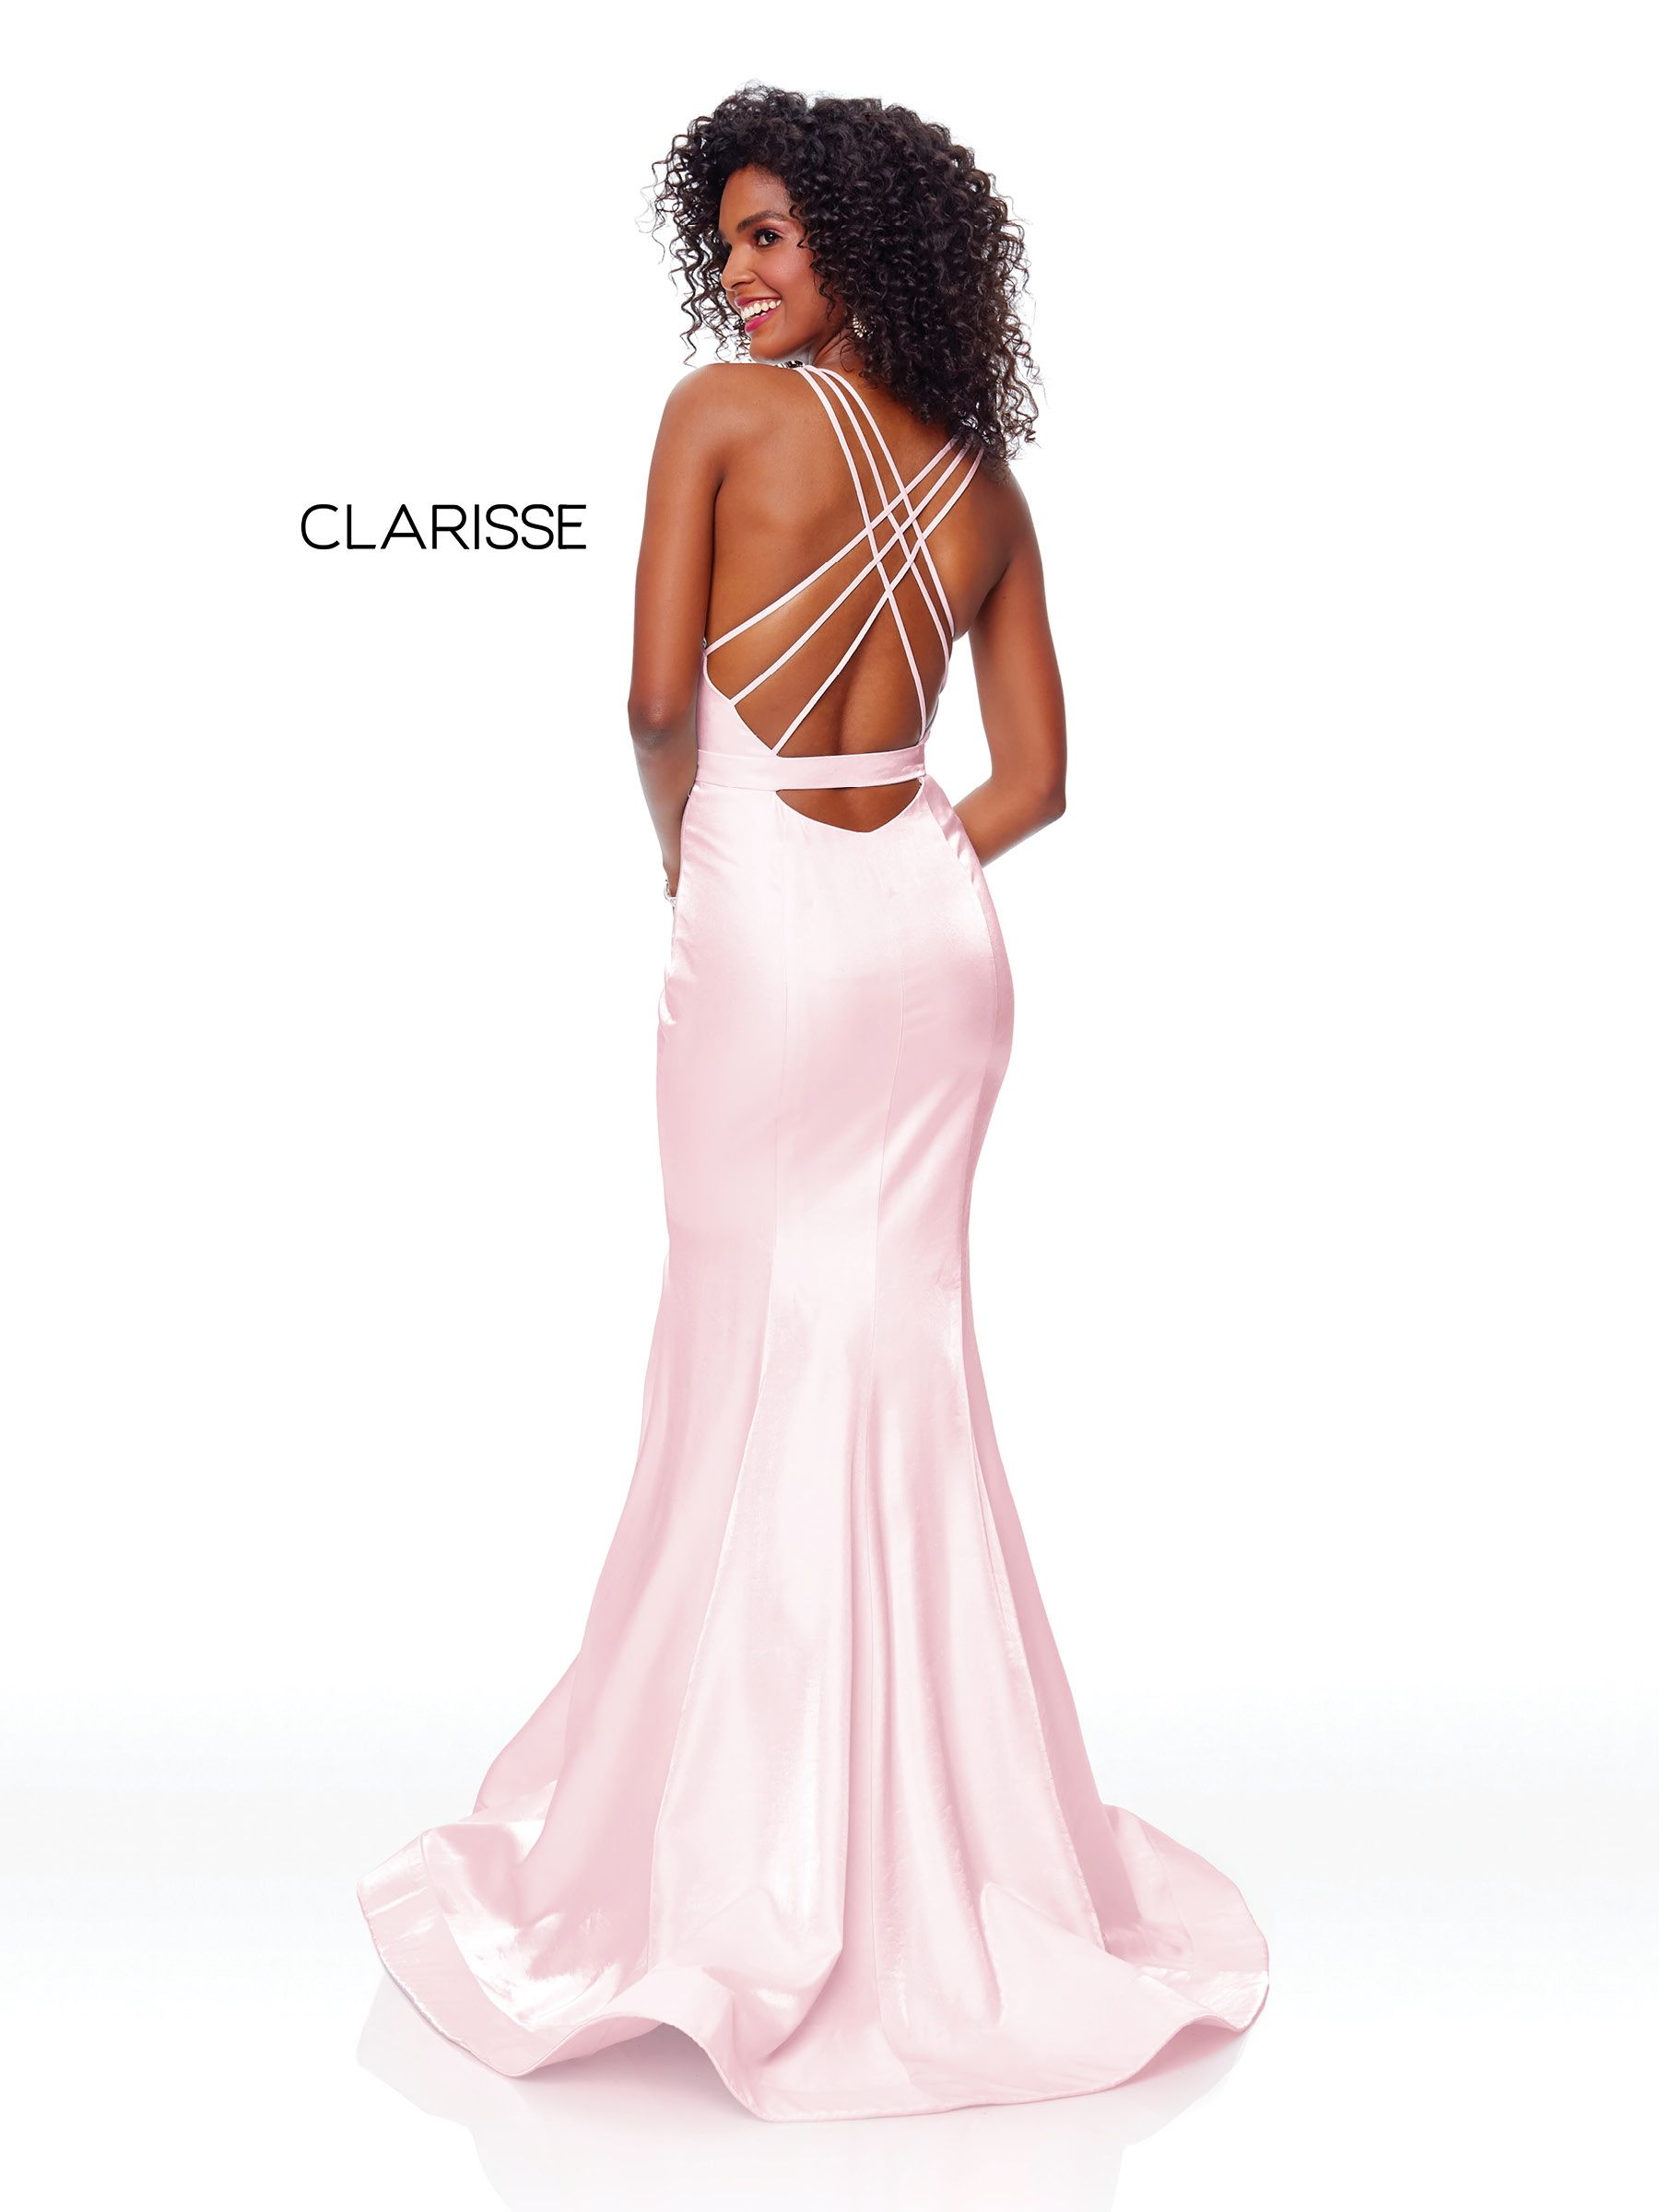 c65c949e9f 3765 - Blush fit to flare prom dress with a plunging neckline and back  strap details